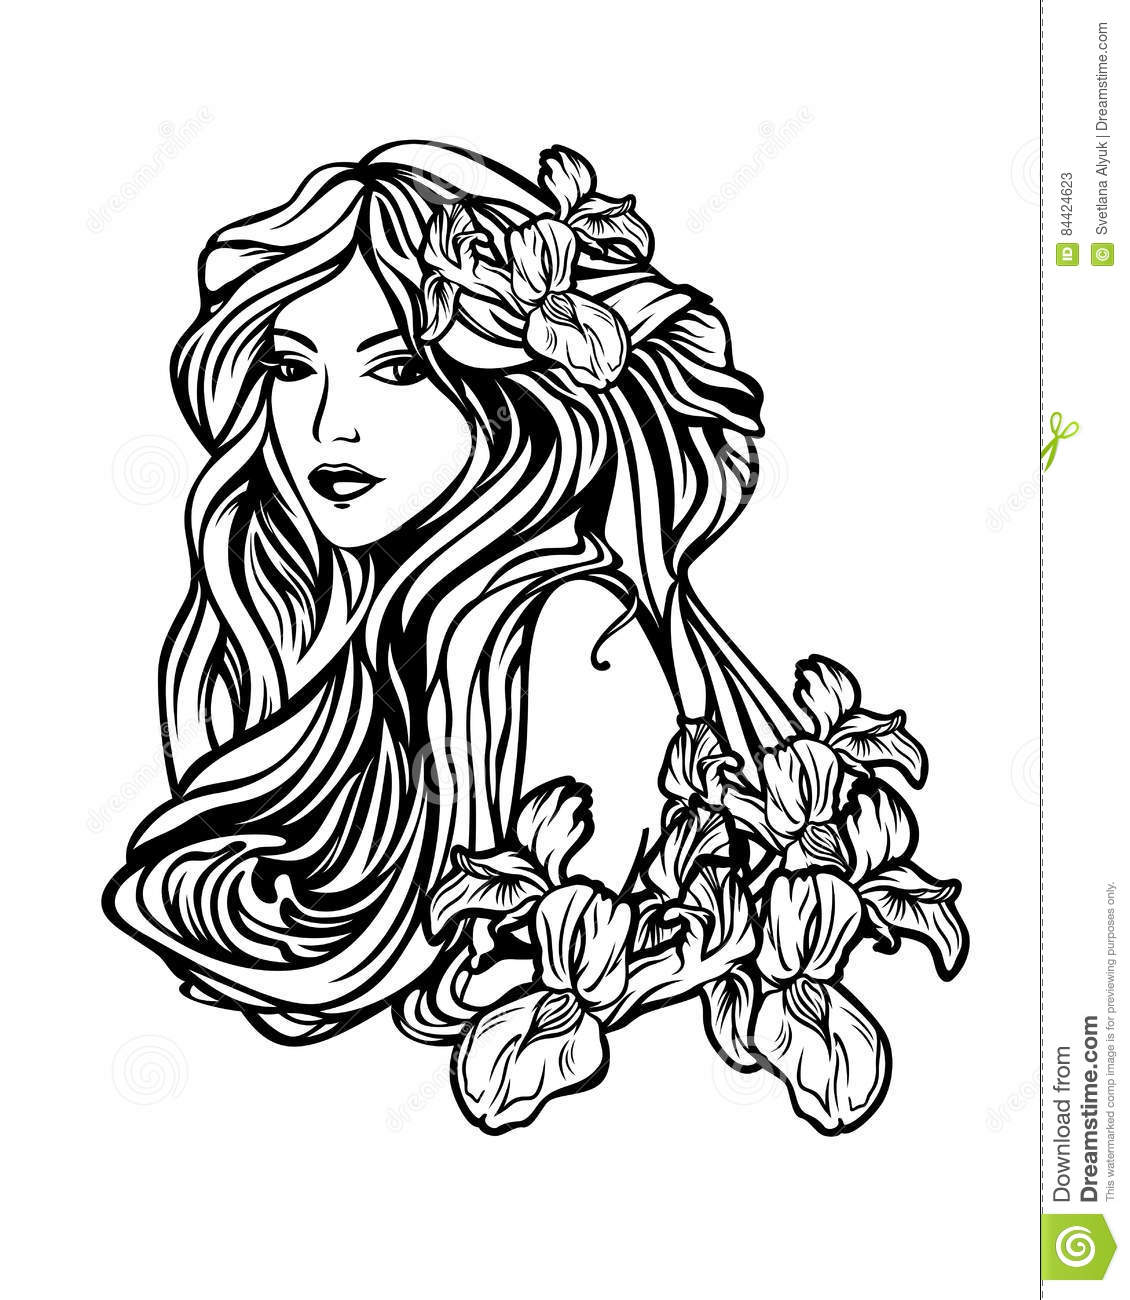 woman with long hair among flowers art nouveau style